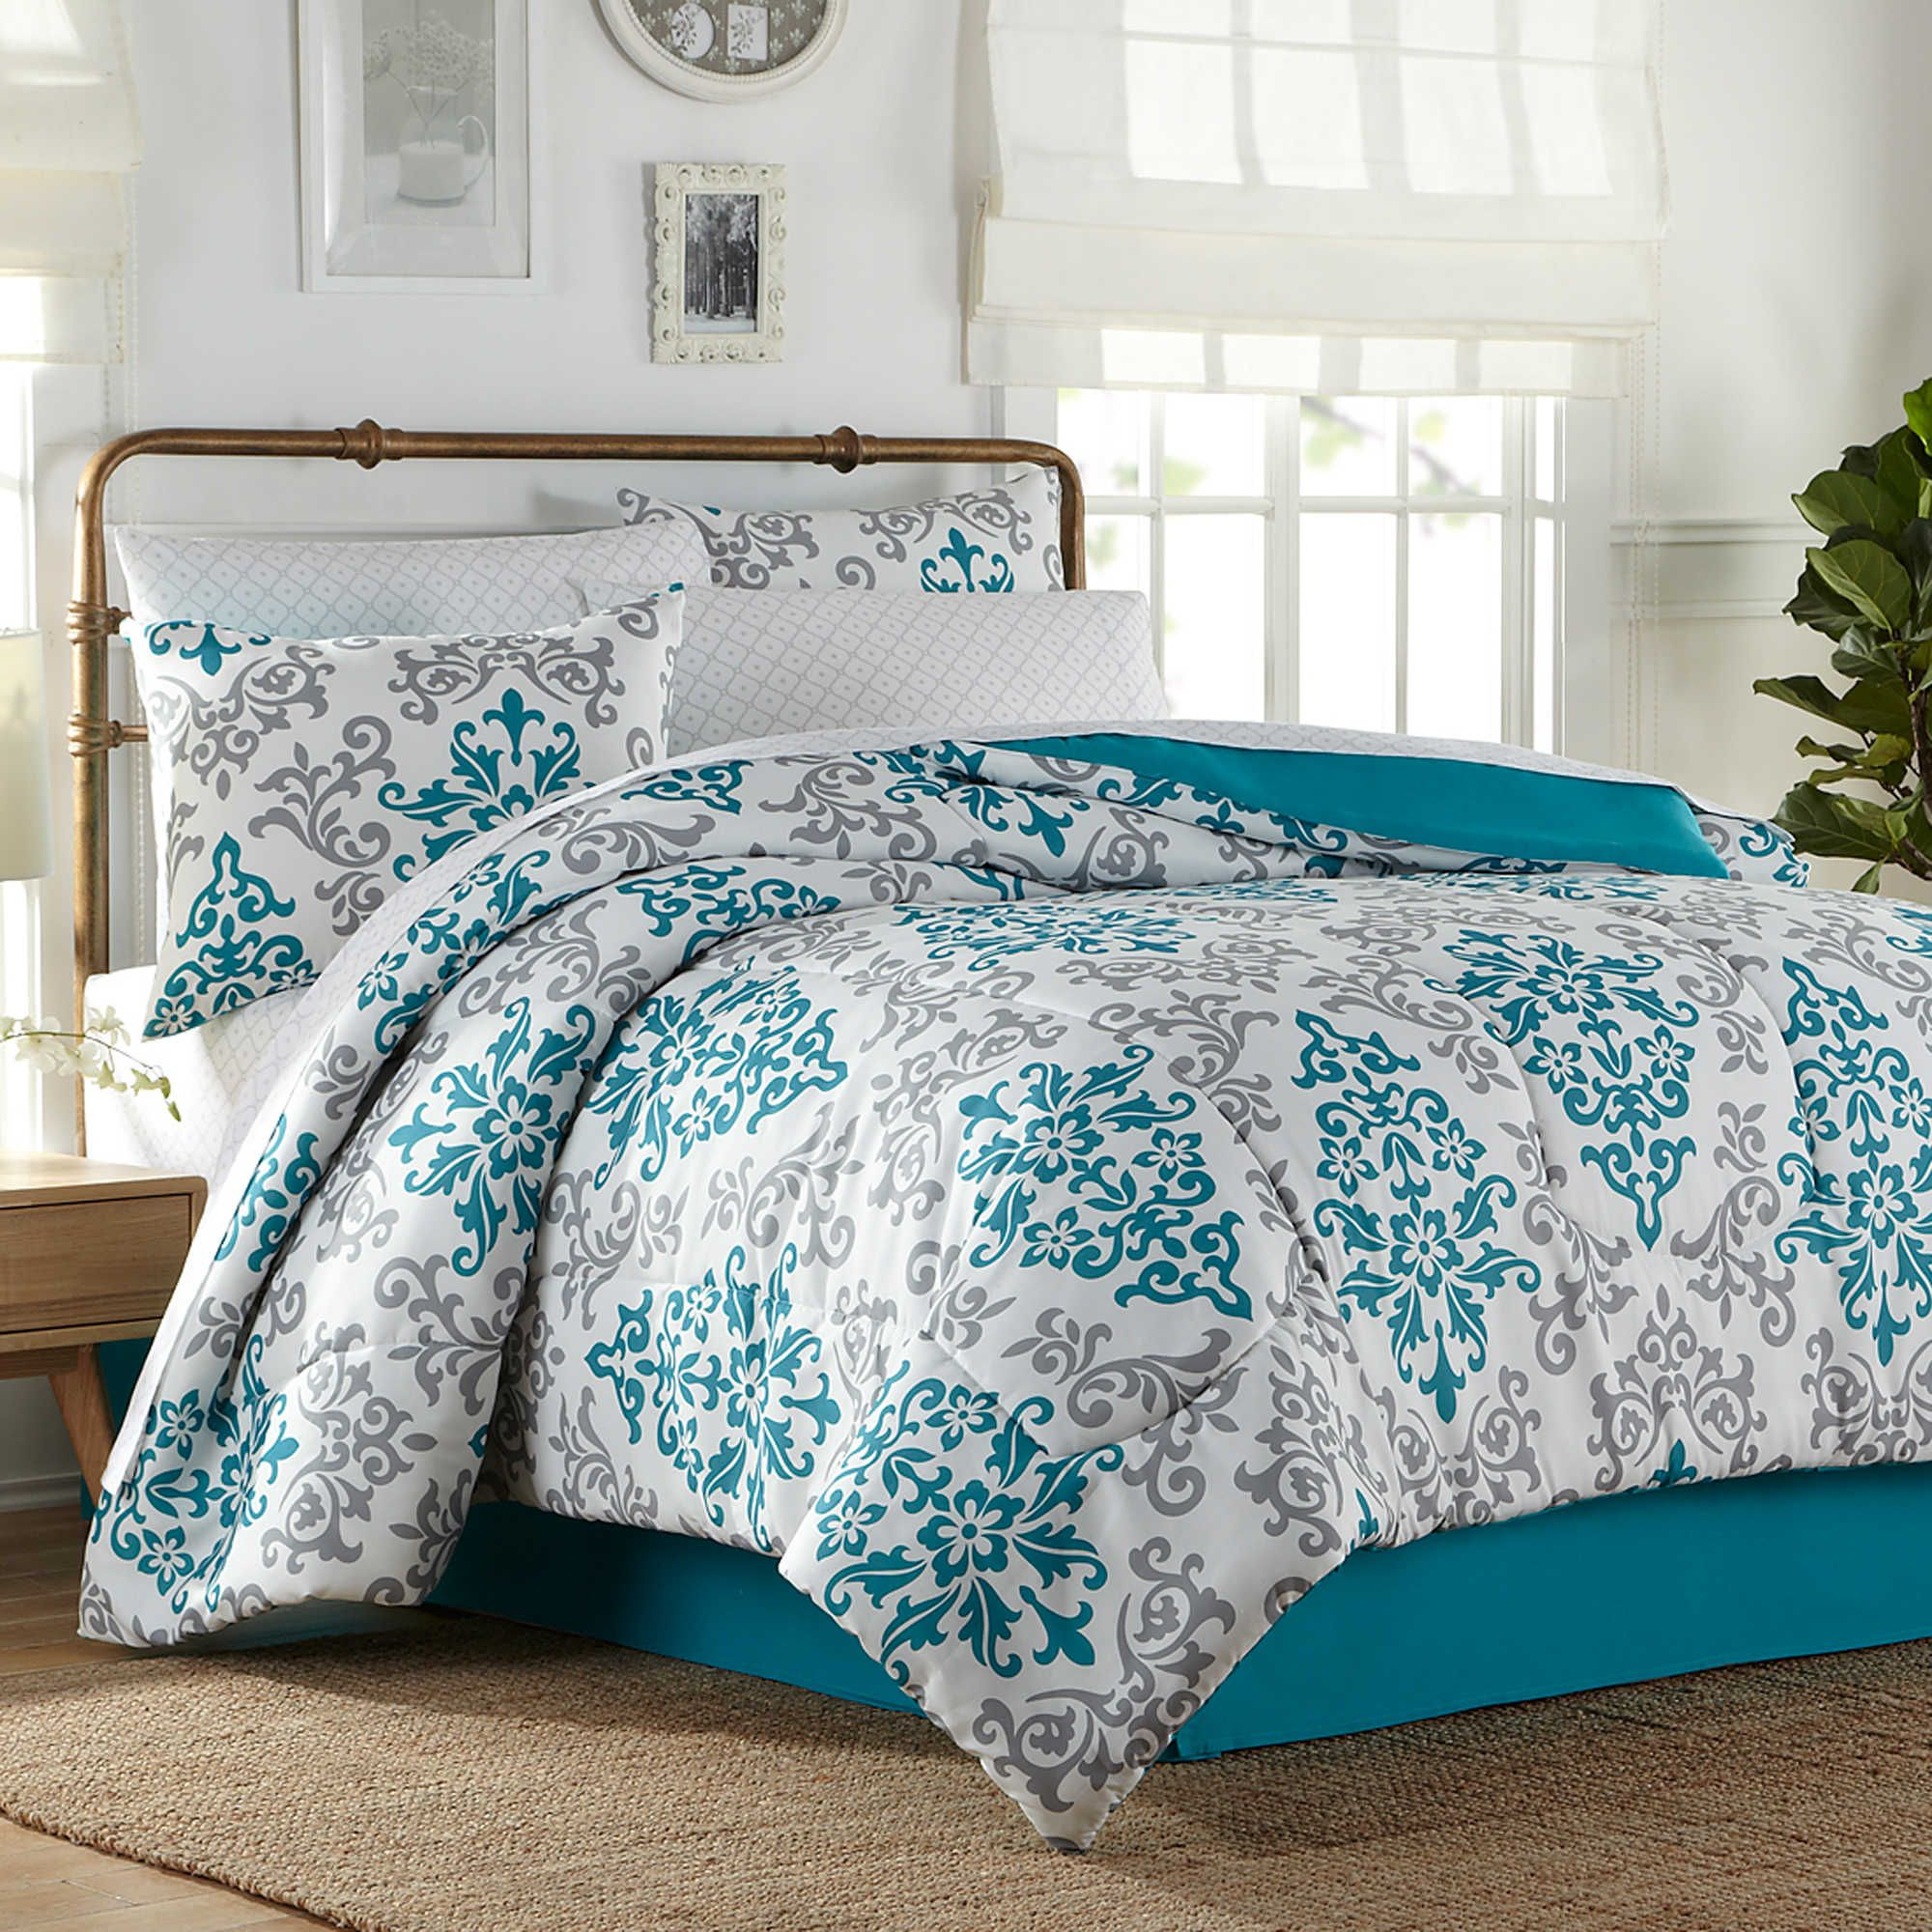 Carina 6 8 Piece Complete Comforter Set In Turquoise For The Home